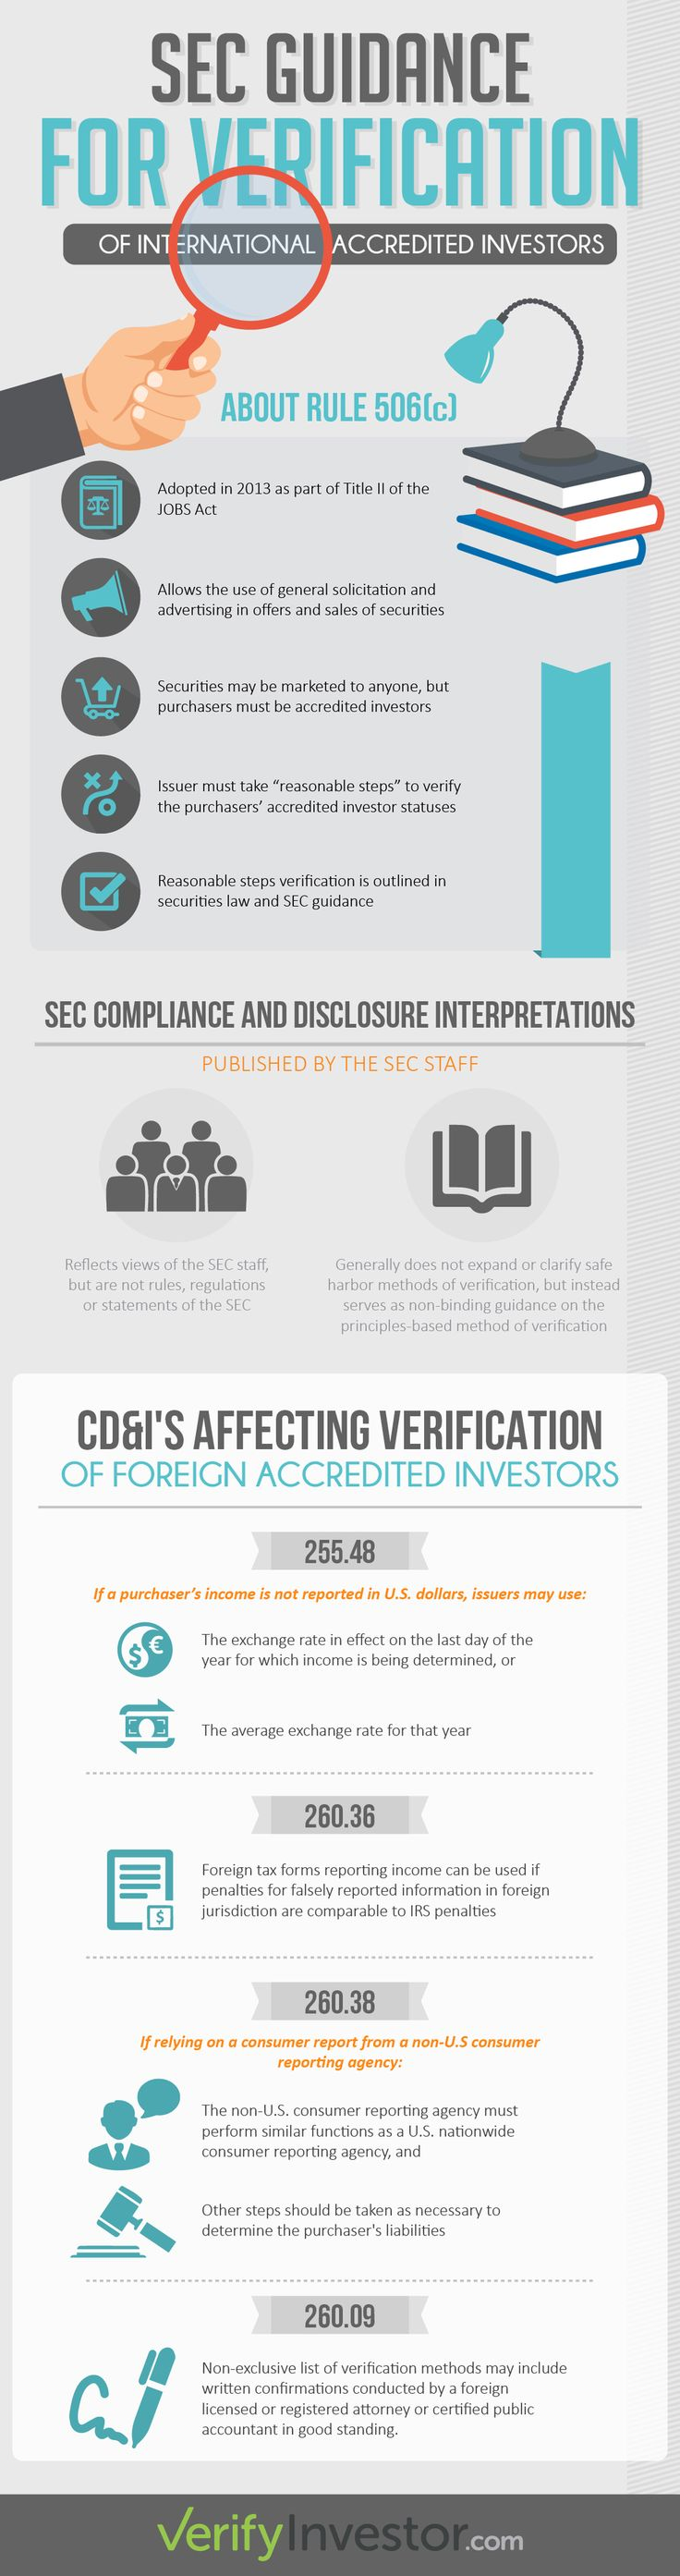 How Should International Accredited #Investors be Verified for Equity #Crowdfunding